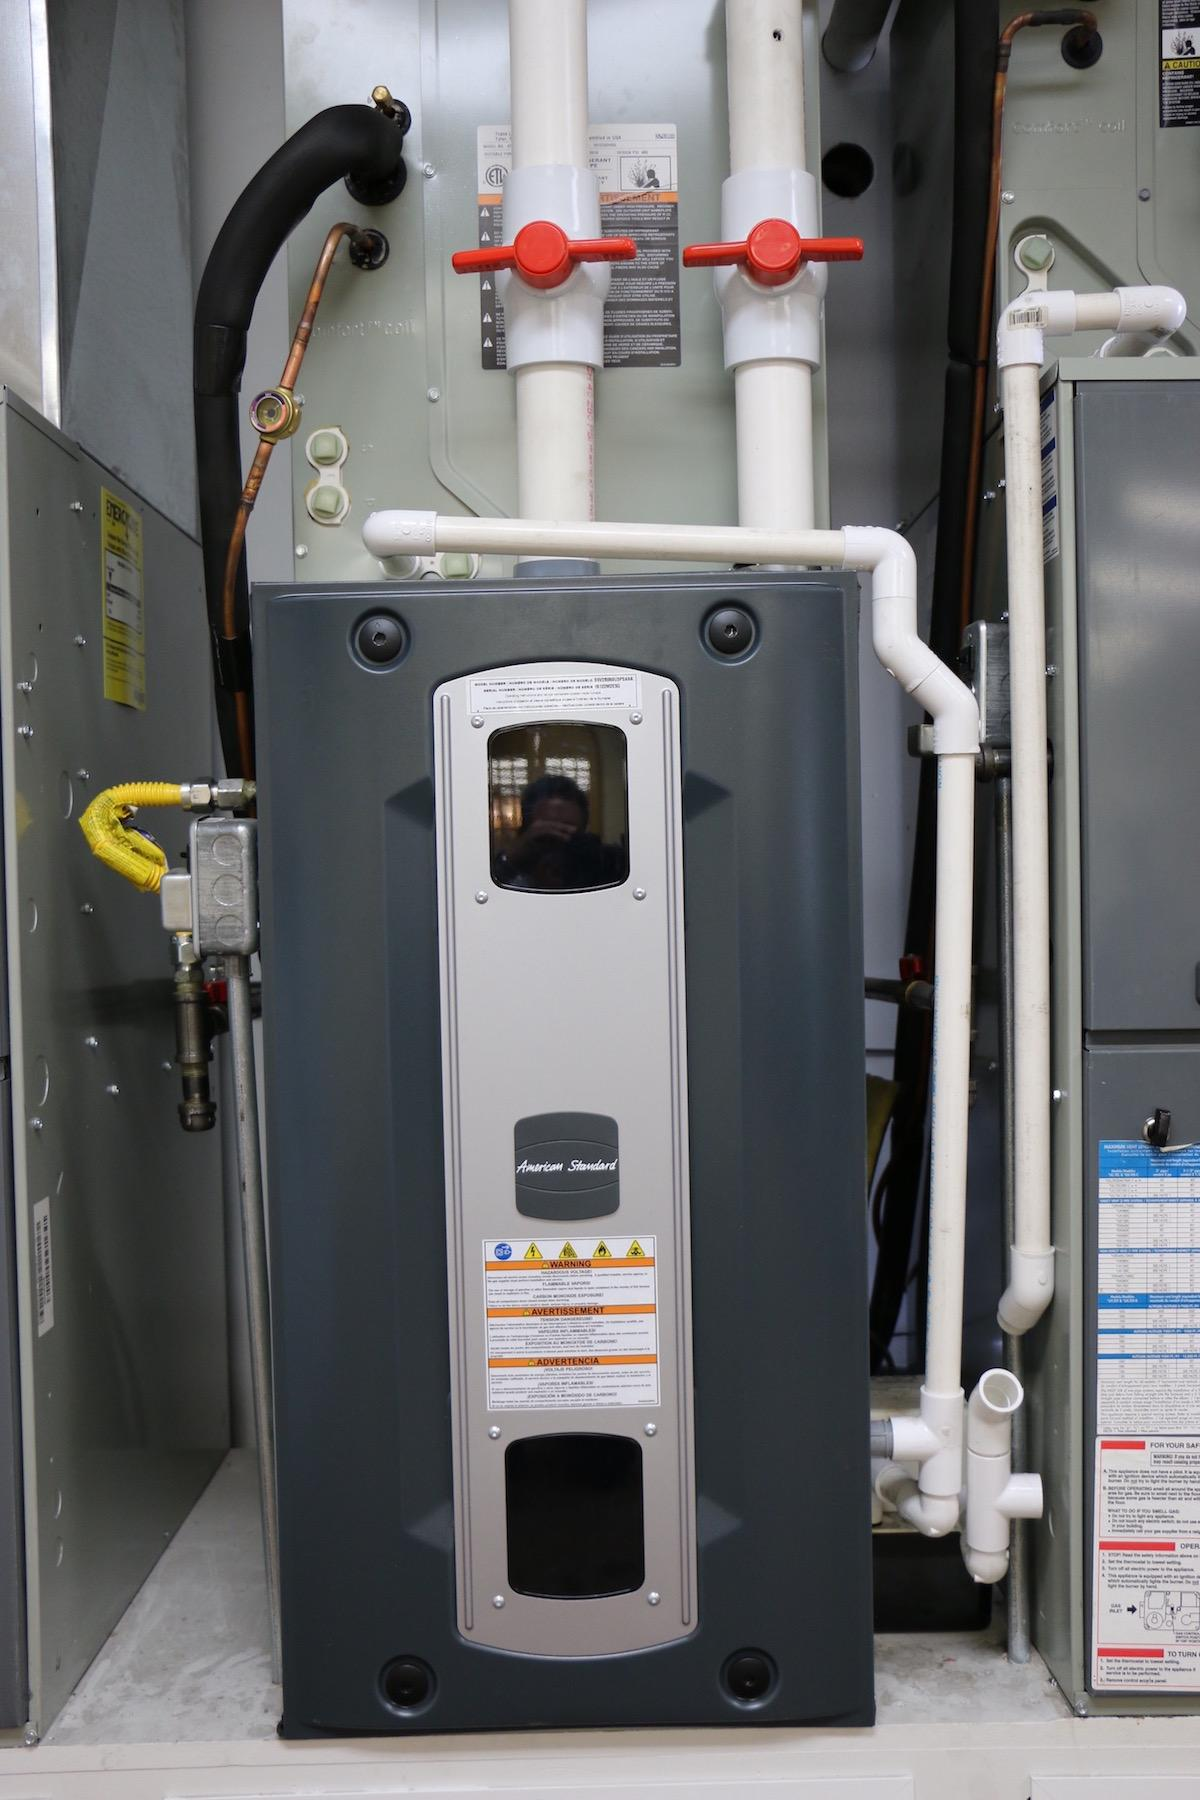 How Much Does It Cost To Replace >> The 5 Best Furnace Repair Companies In Denver, CO - Altitude Comfort Heating & Air Blog